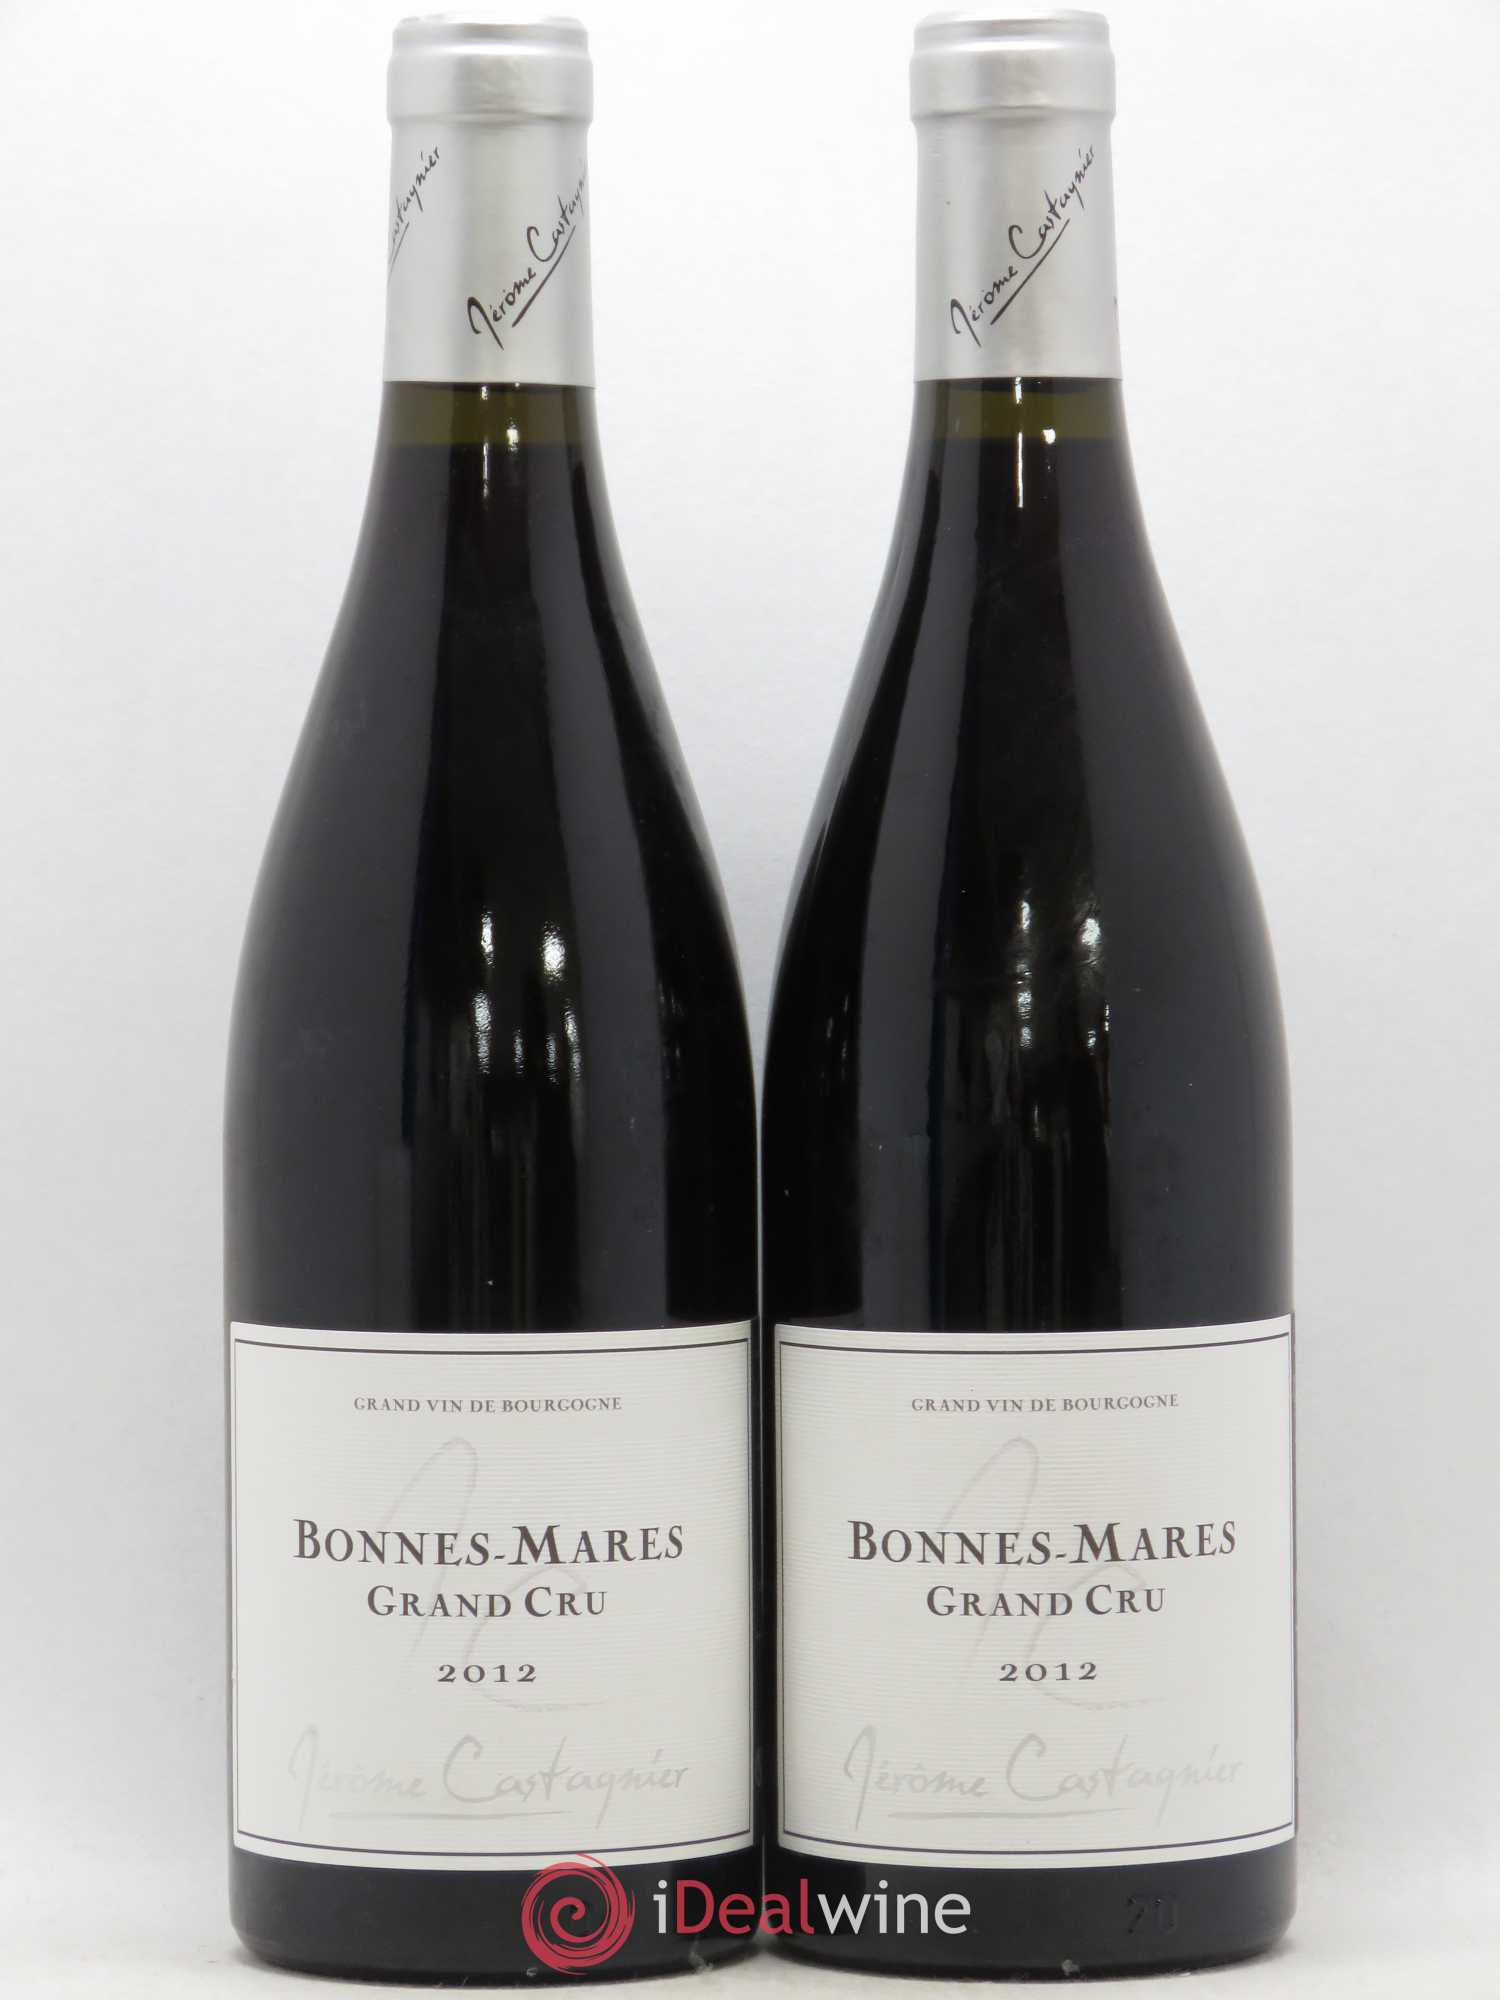 Bonnes-Mares Grand Cru Domaine Jerome Castagnier 2012 - Lot of 2 Bottles